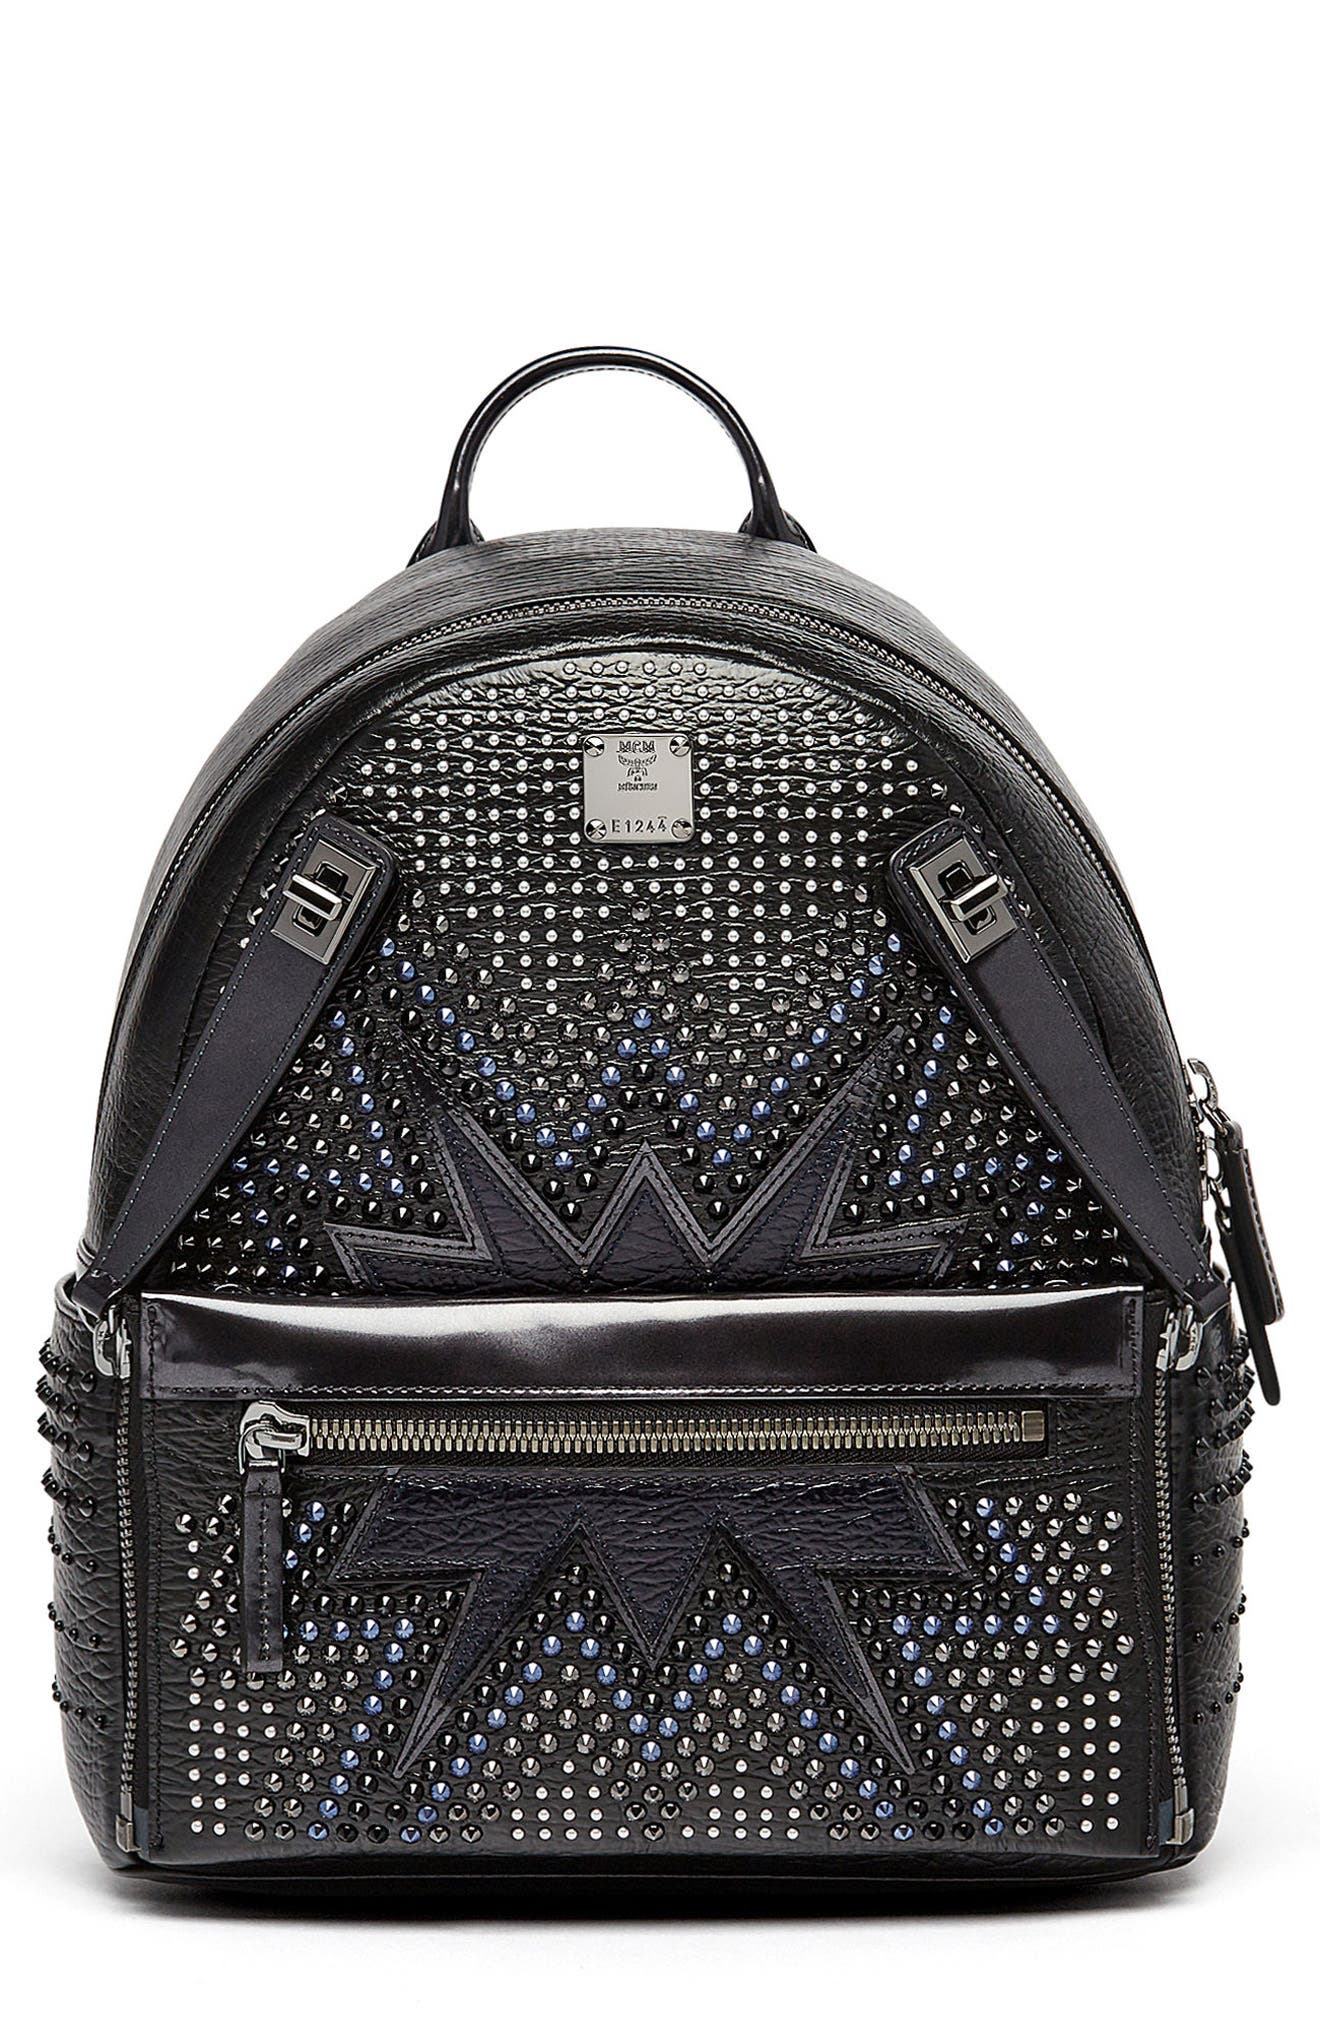 Dual Stark Studded Leather Backpack,                             Main thumbnail 1, color,                             001